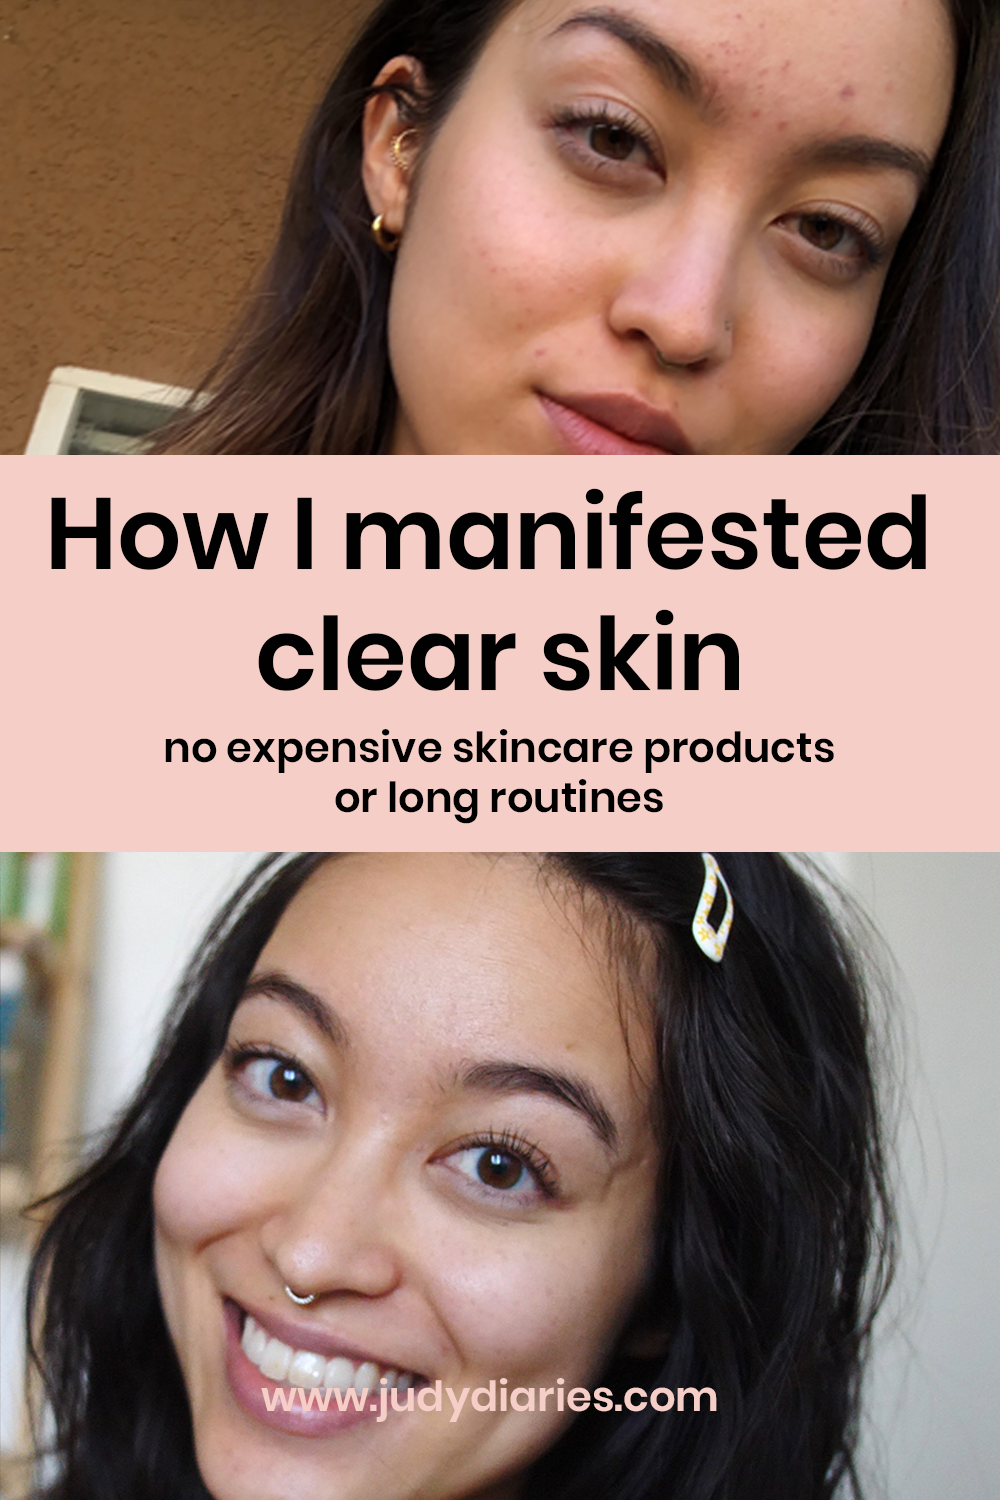 If you've tried everything to get clear skin but haven't gotten any results, why not try manifesting using the law of attraction to clear your skin